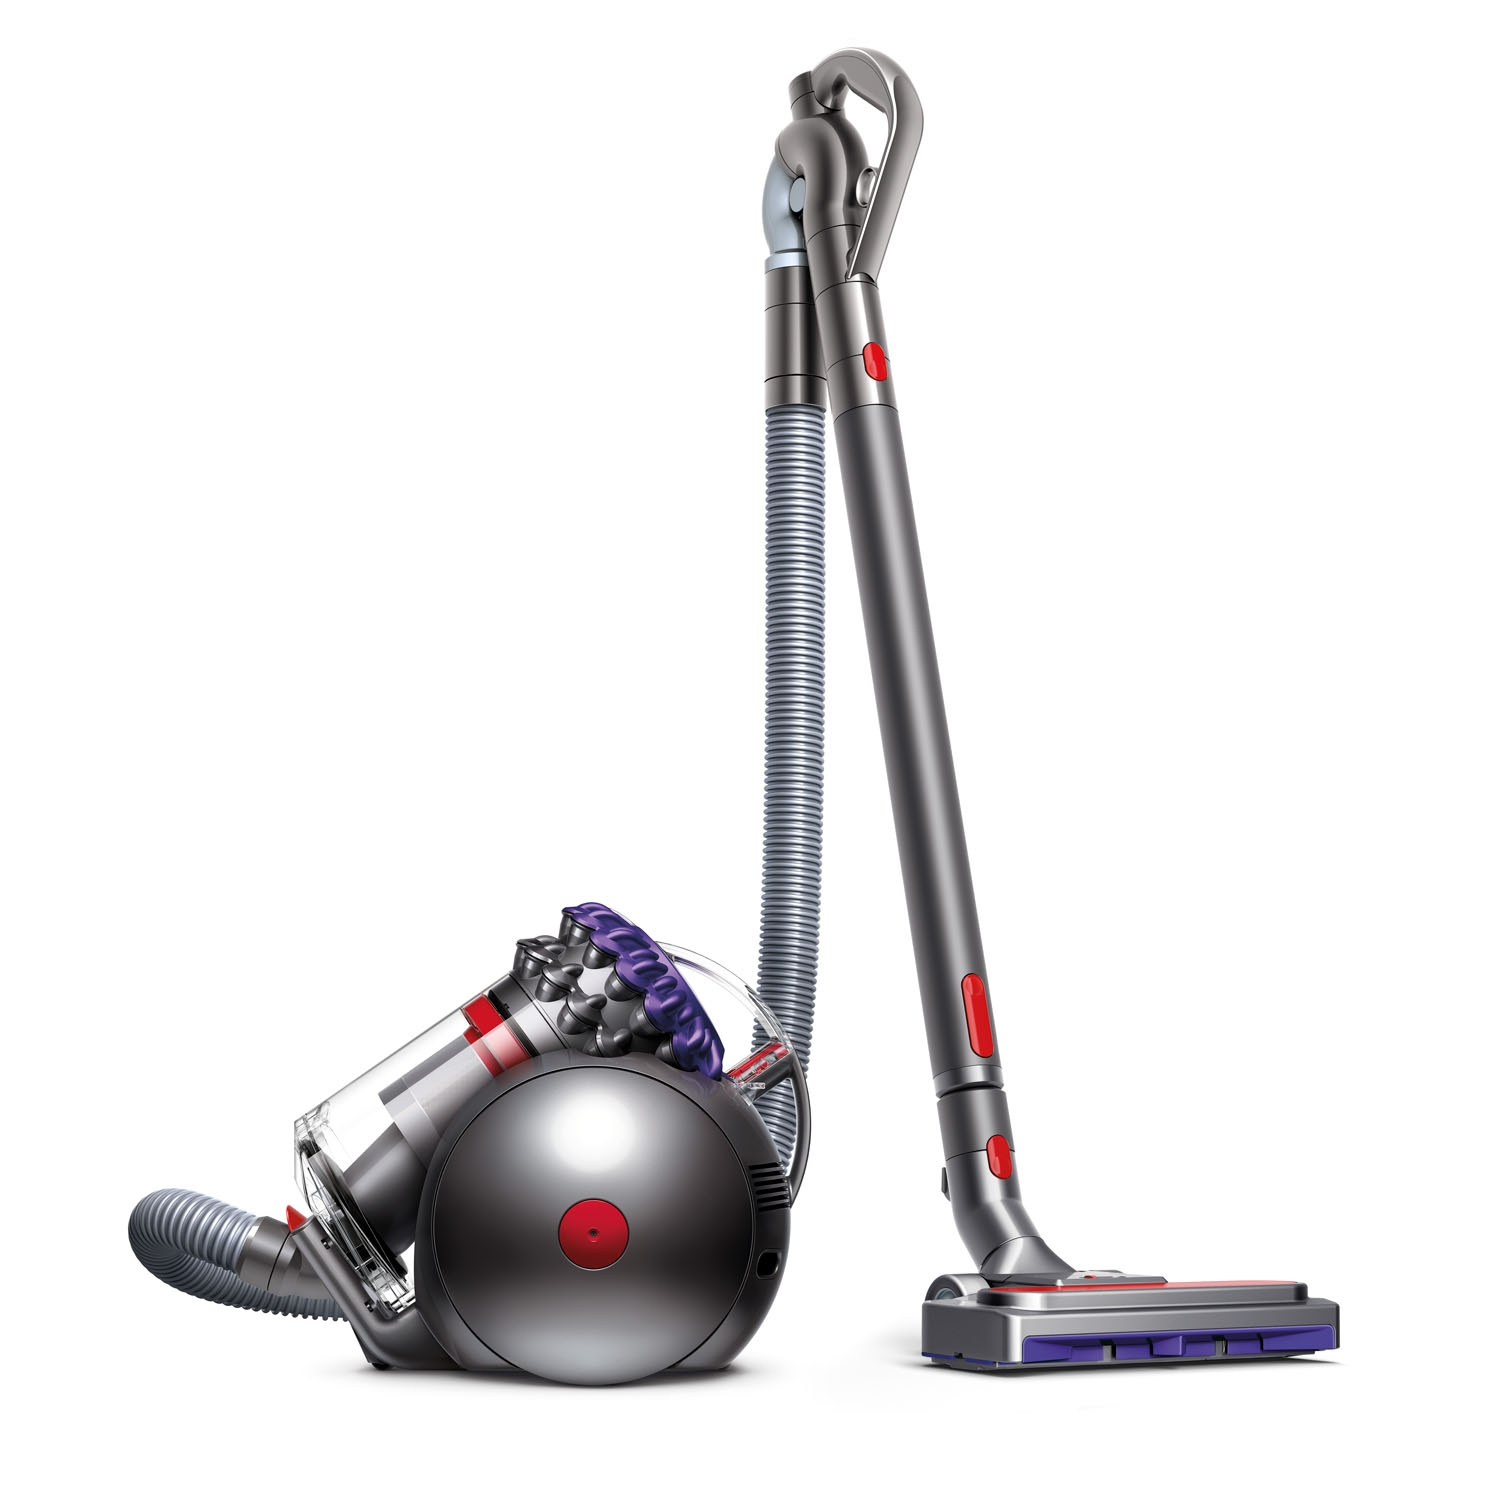 Image of Dyson Big Ball Animal 2+ Cylinder Vacuum Cleaner